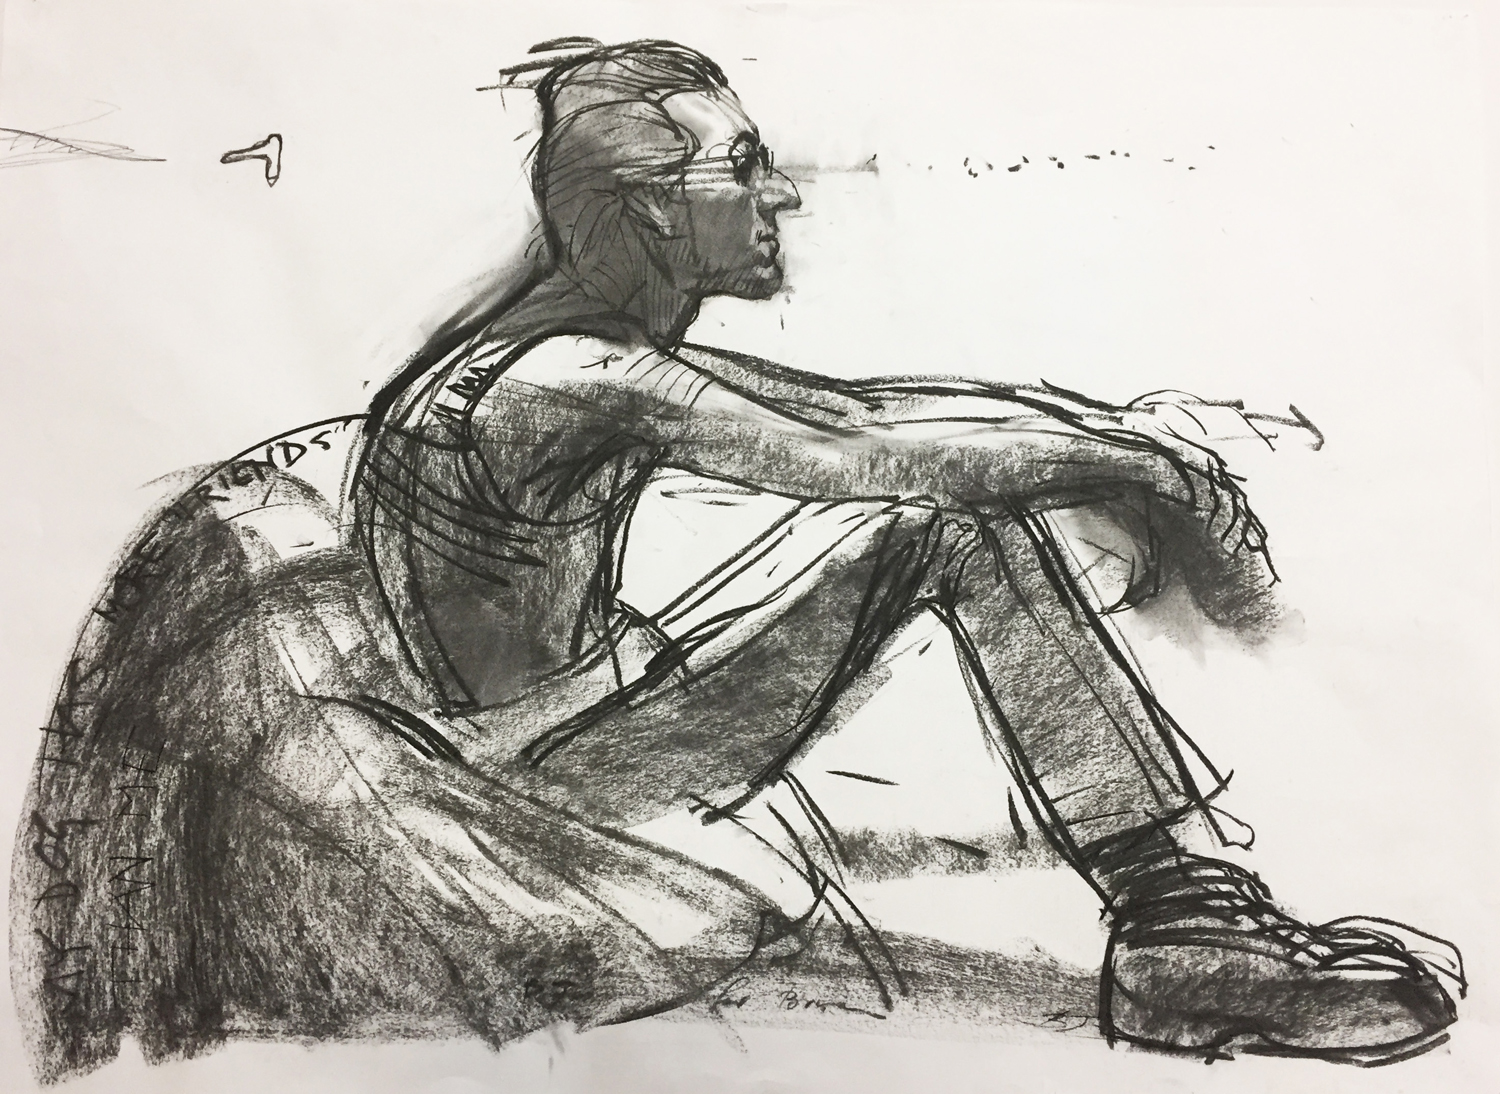 Ben Joel,  Big Brian  2005 ,  charcoal on paper